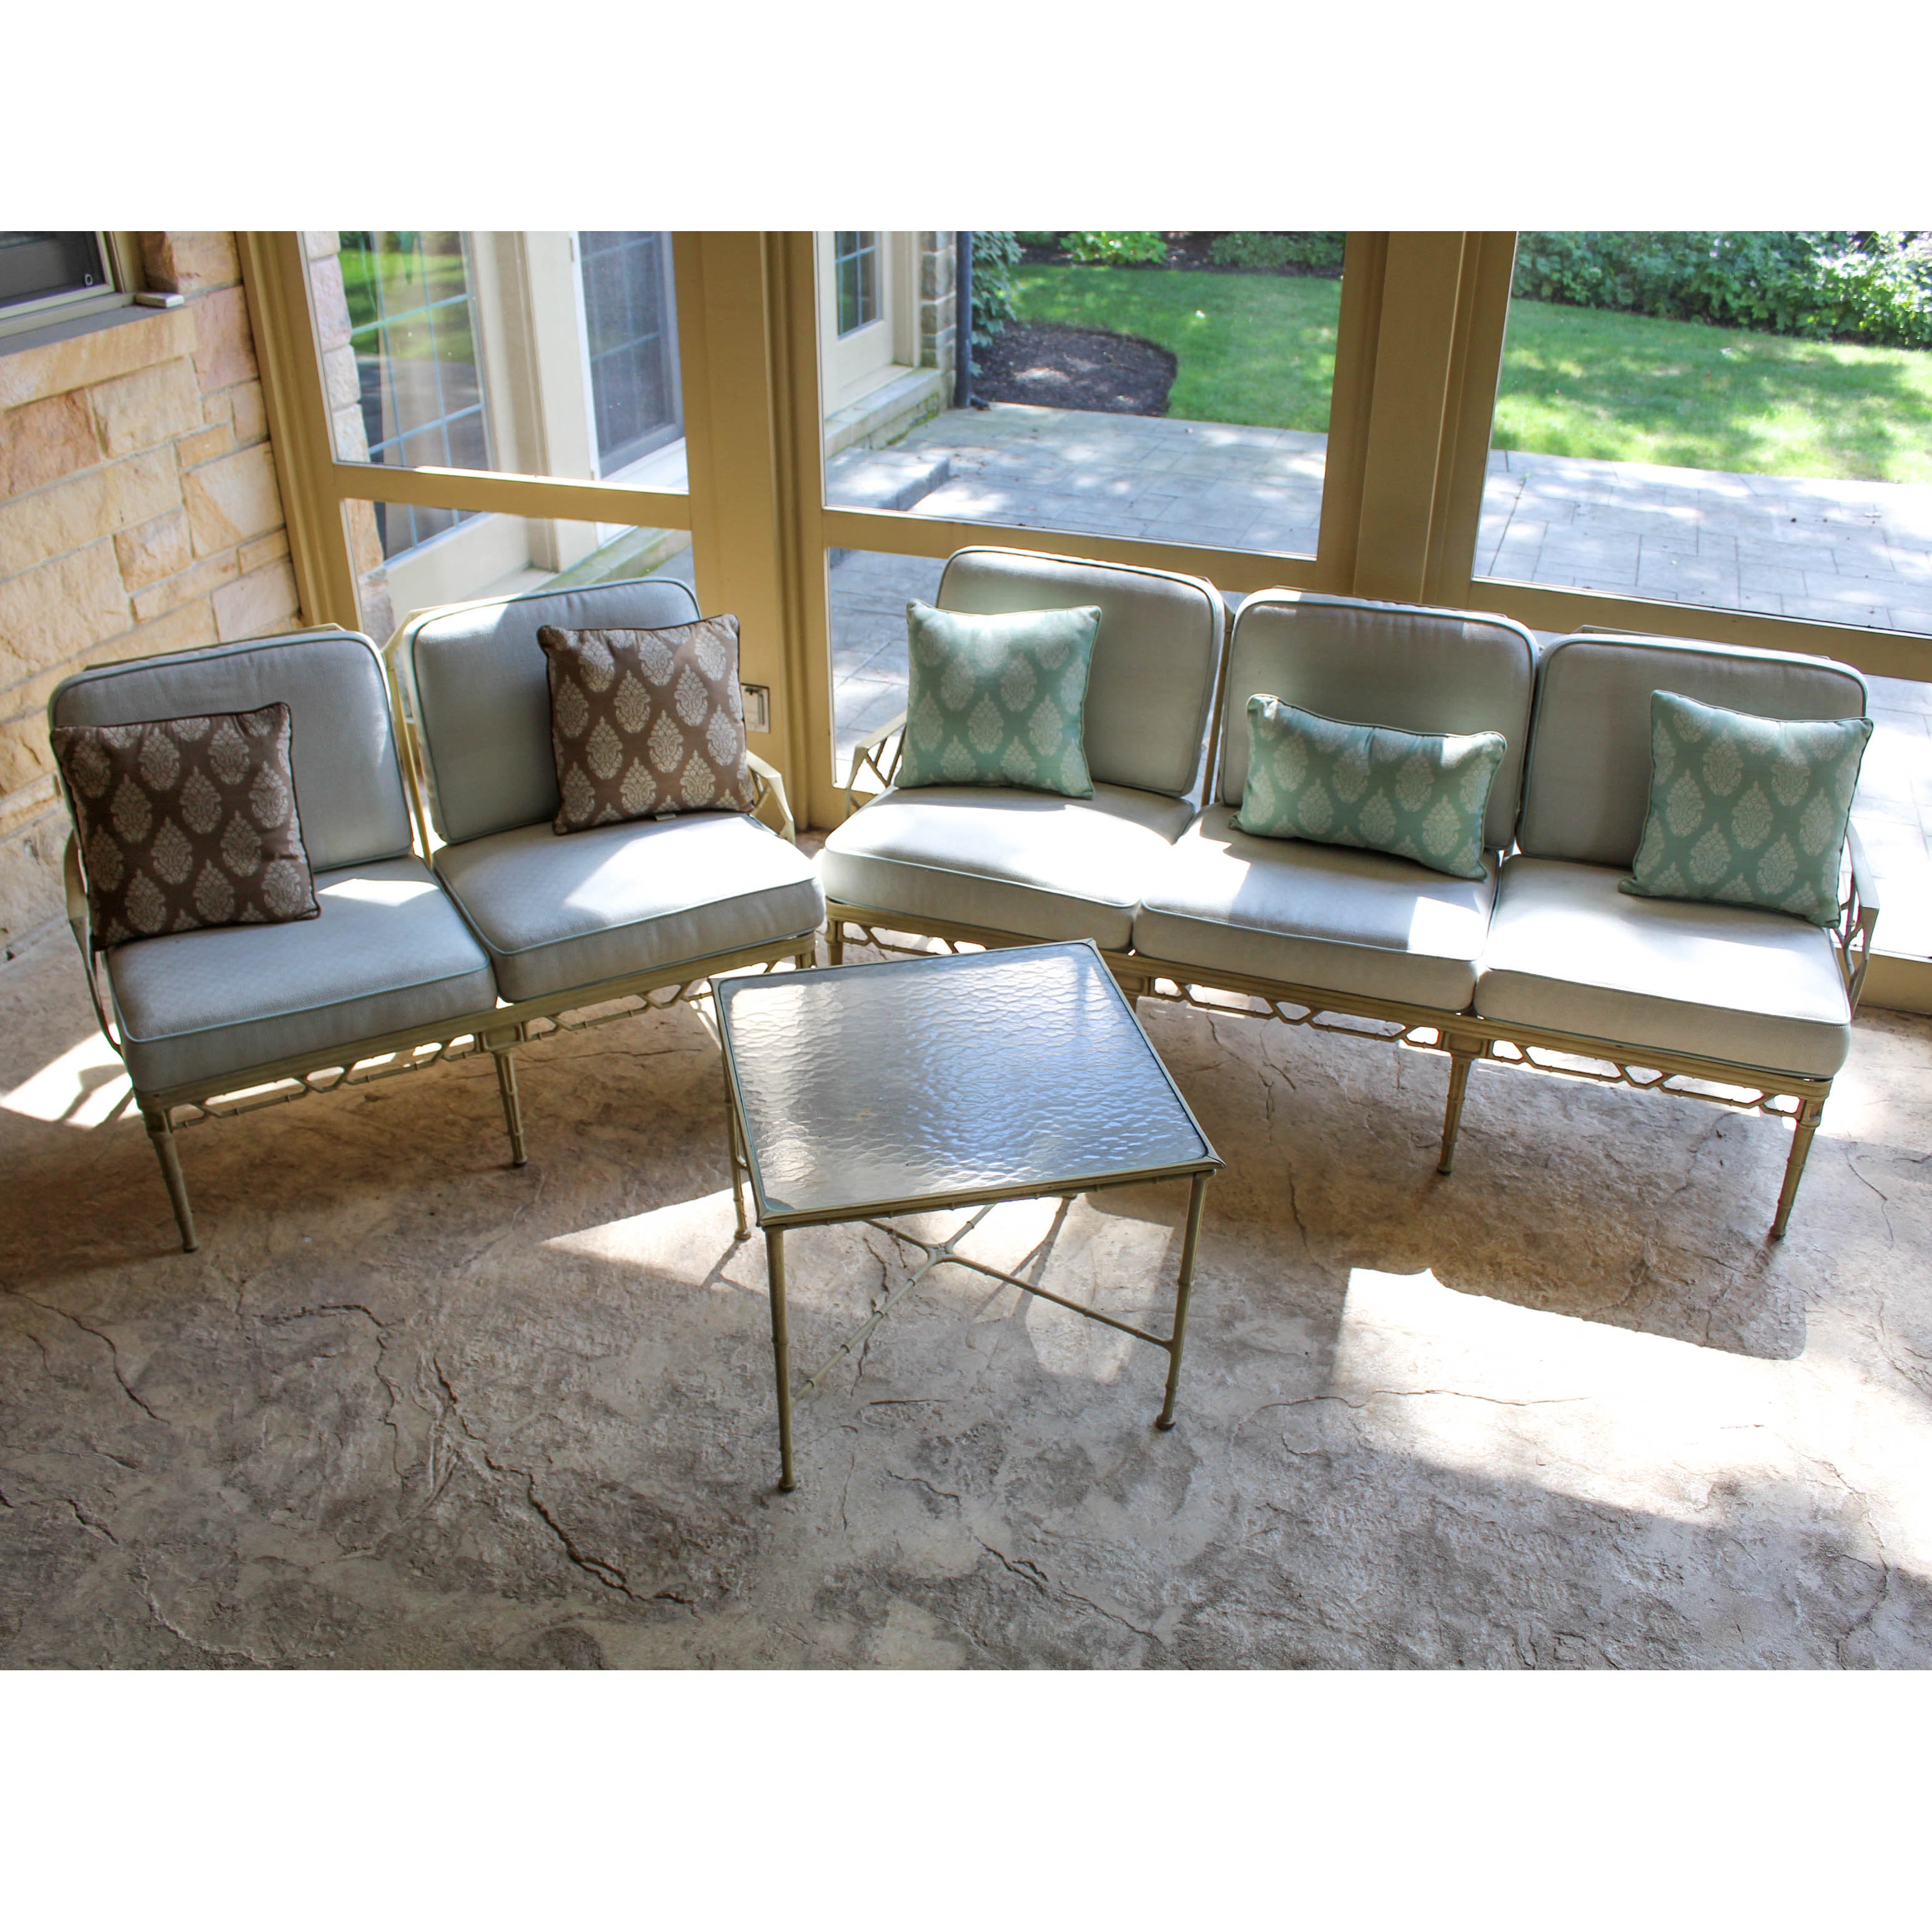 Outdoor Furniture Grouping